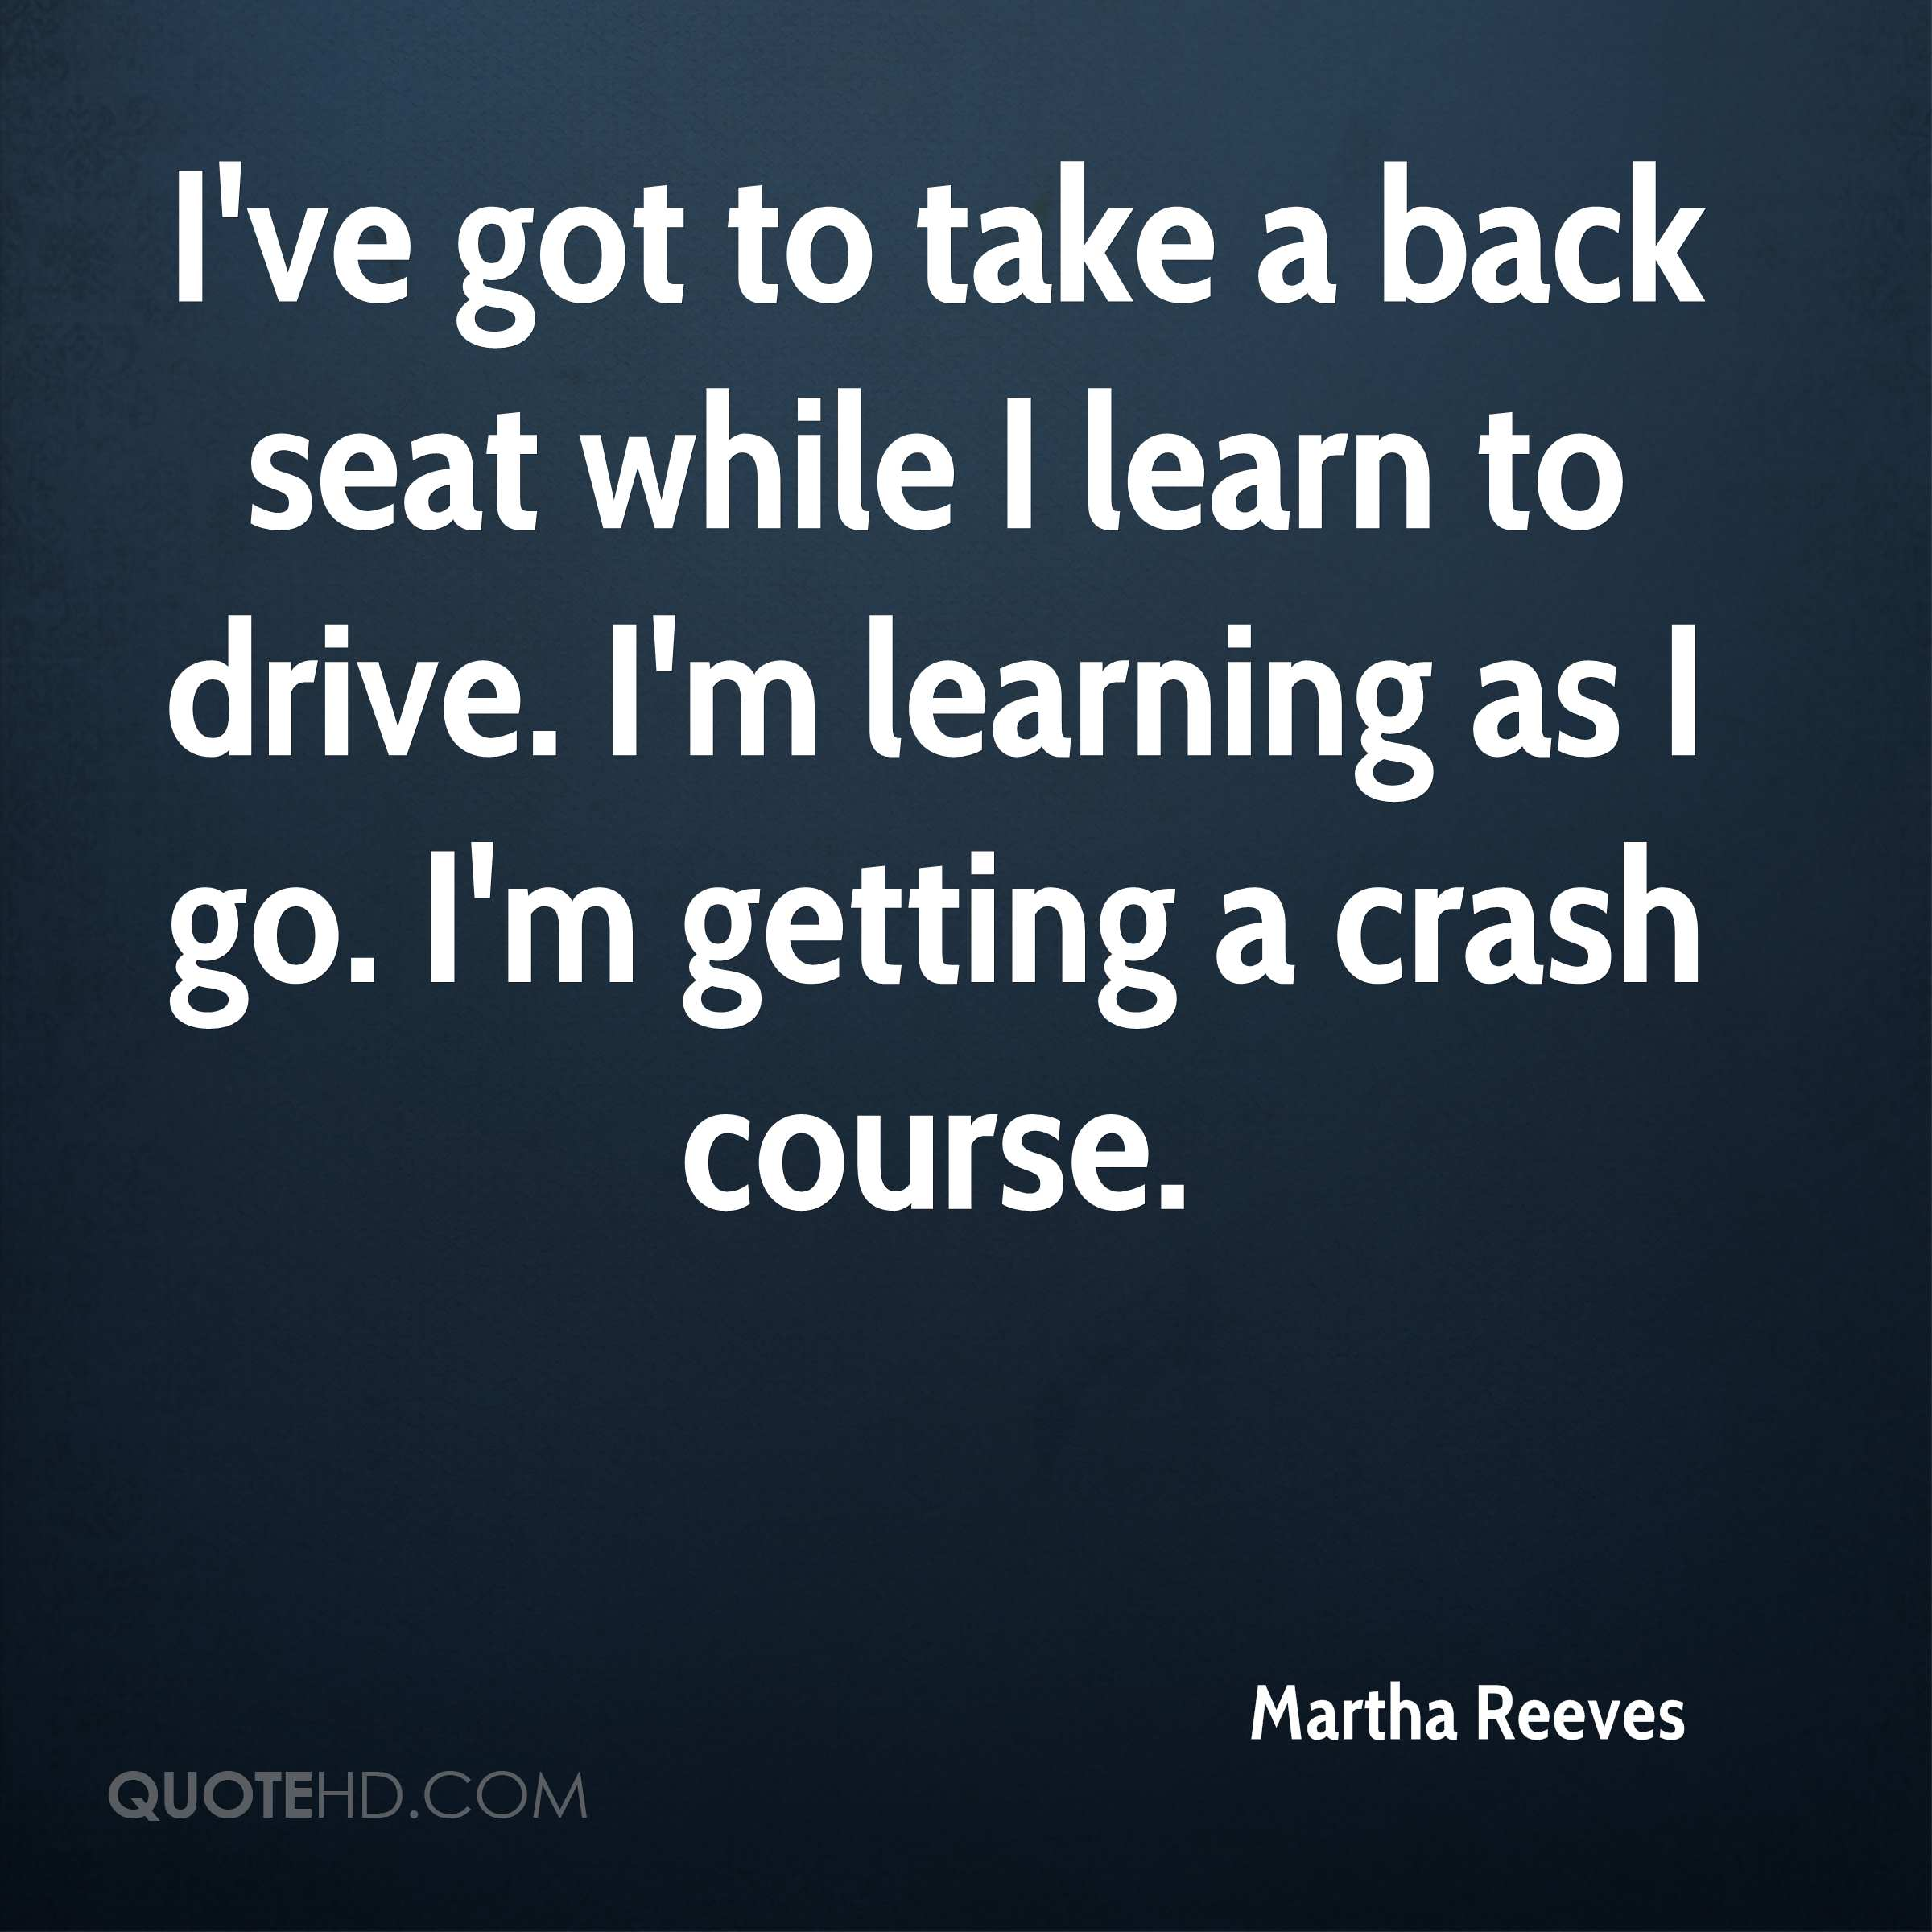 I've got to take a back seat while I learn to drive. I'm learning as I go. I'm getting a crash course.